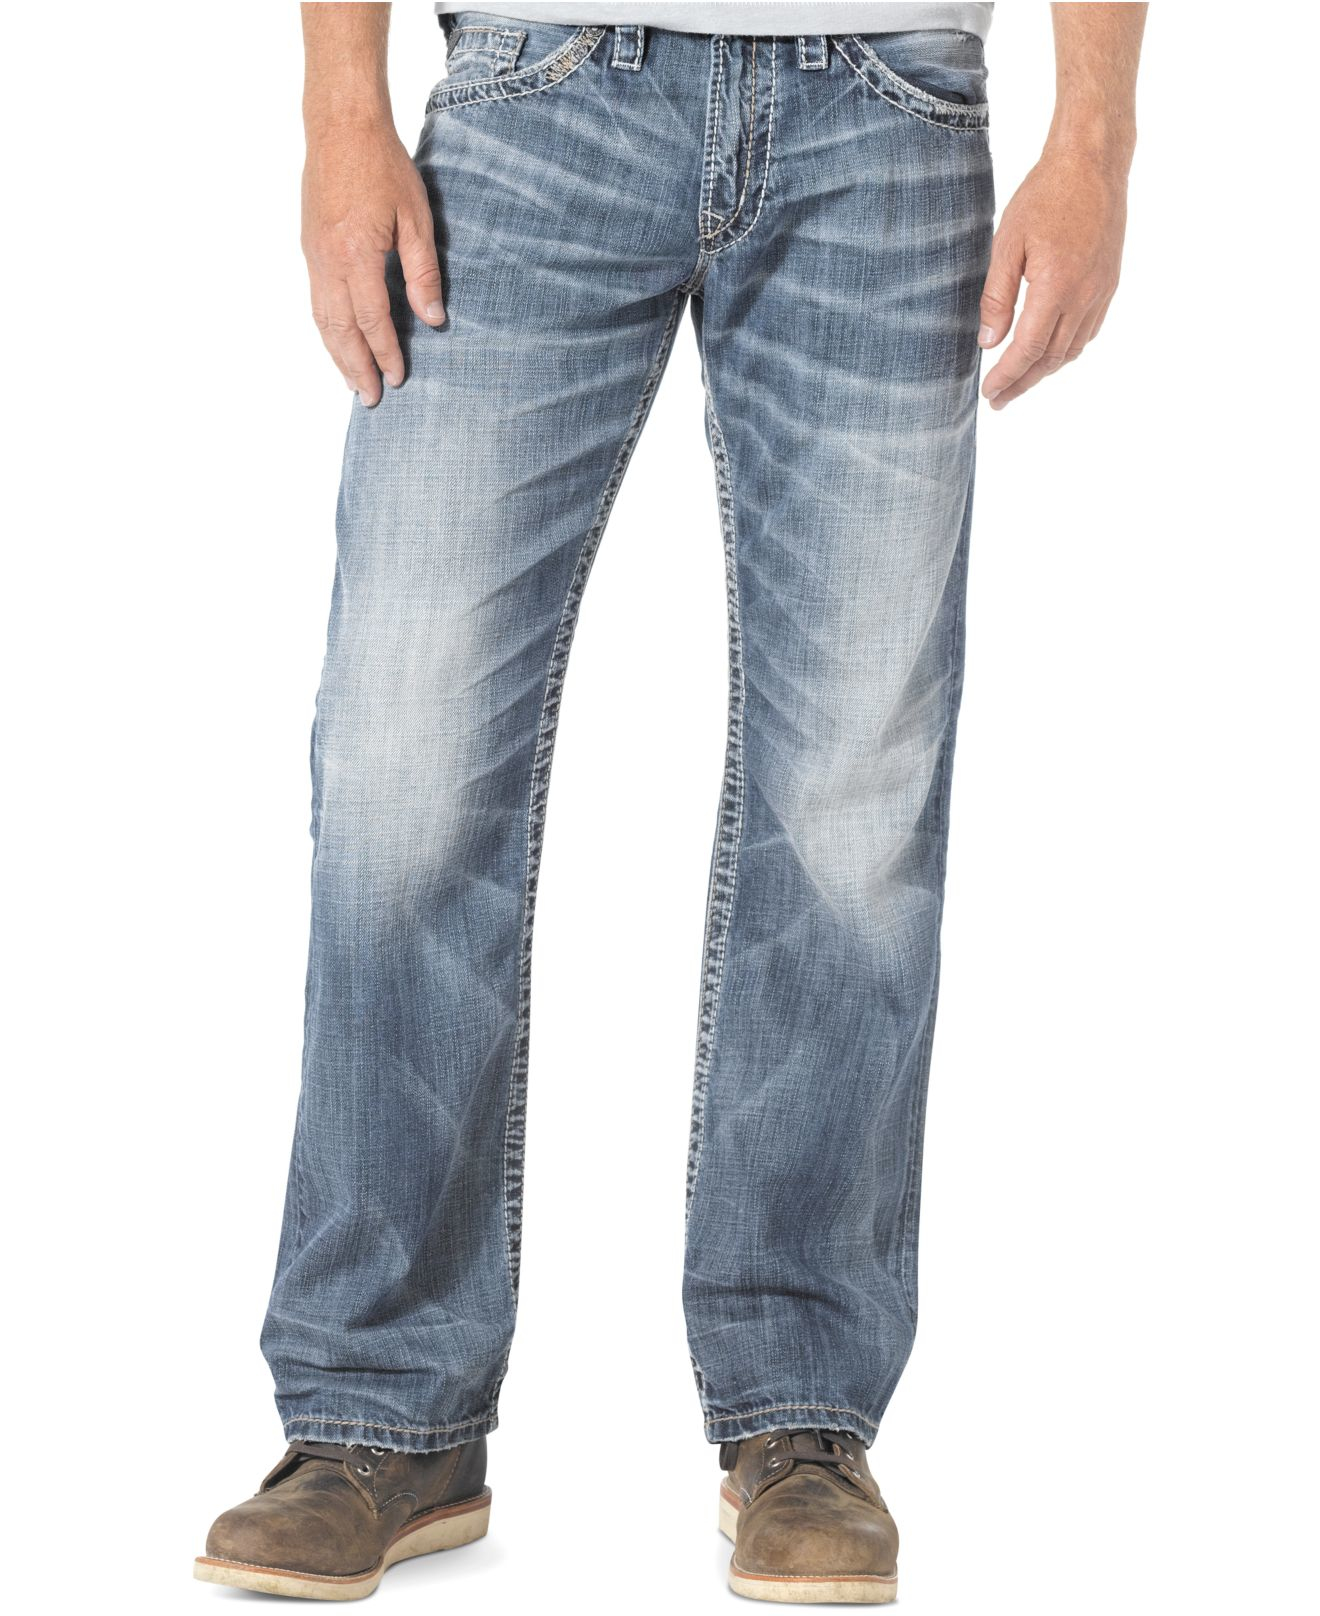 Stuccu: Best Deals on silver jeans Up To 70% offBest Offers · Compare Prices · Exclusive Deals · Lowest Prices.